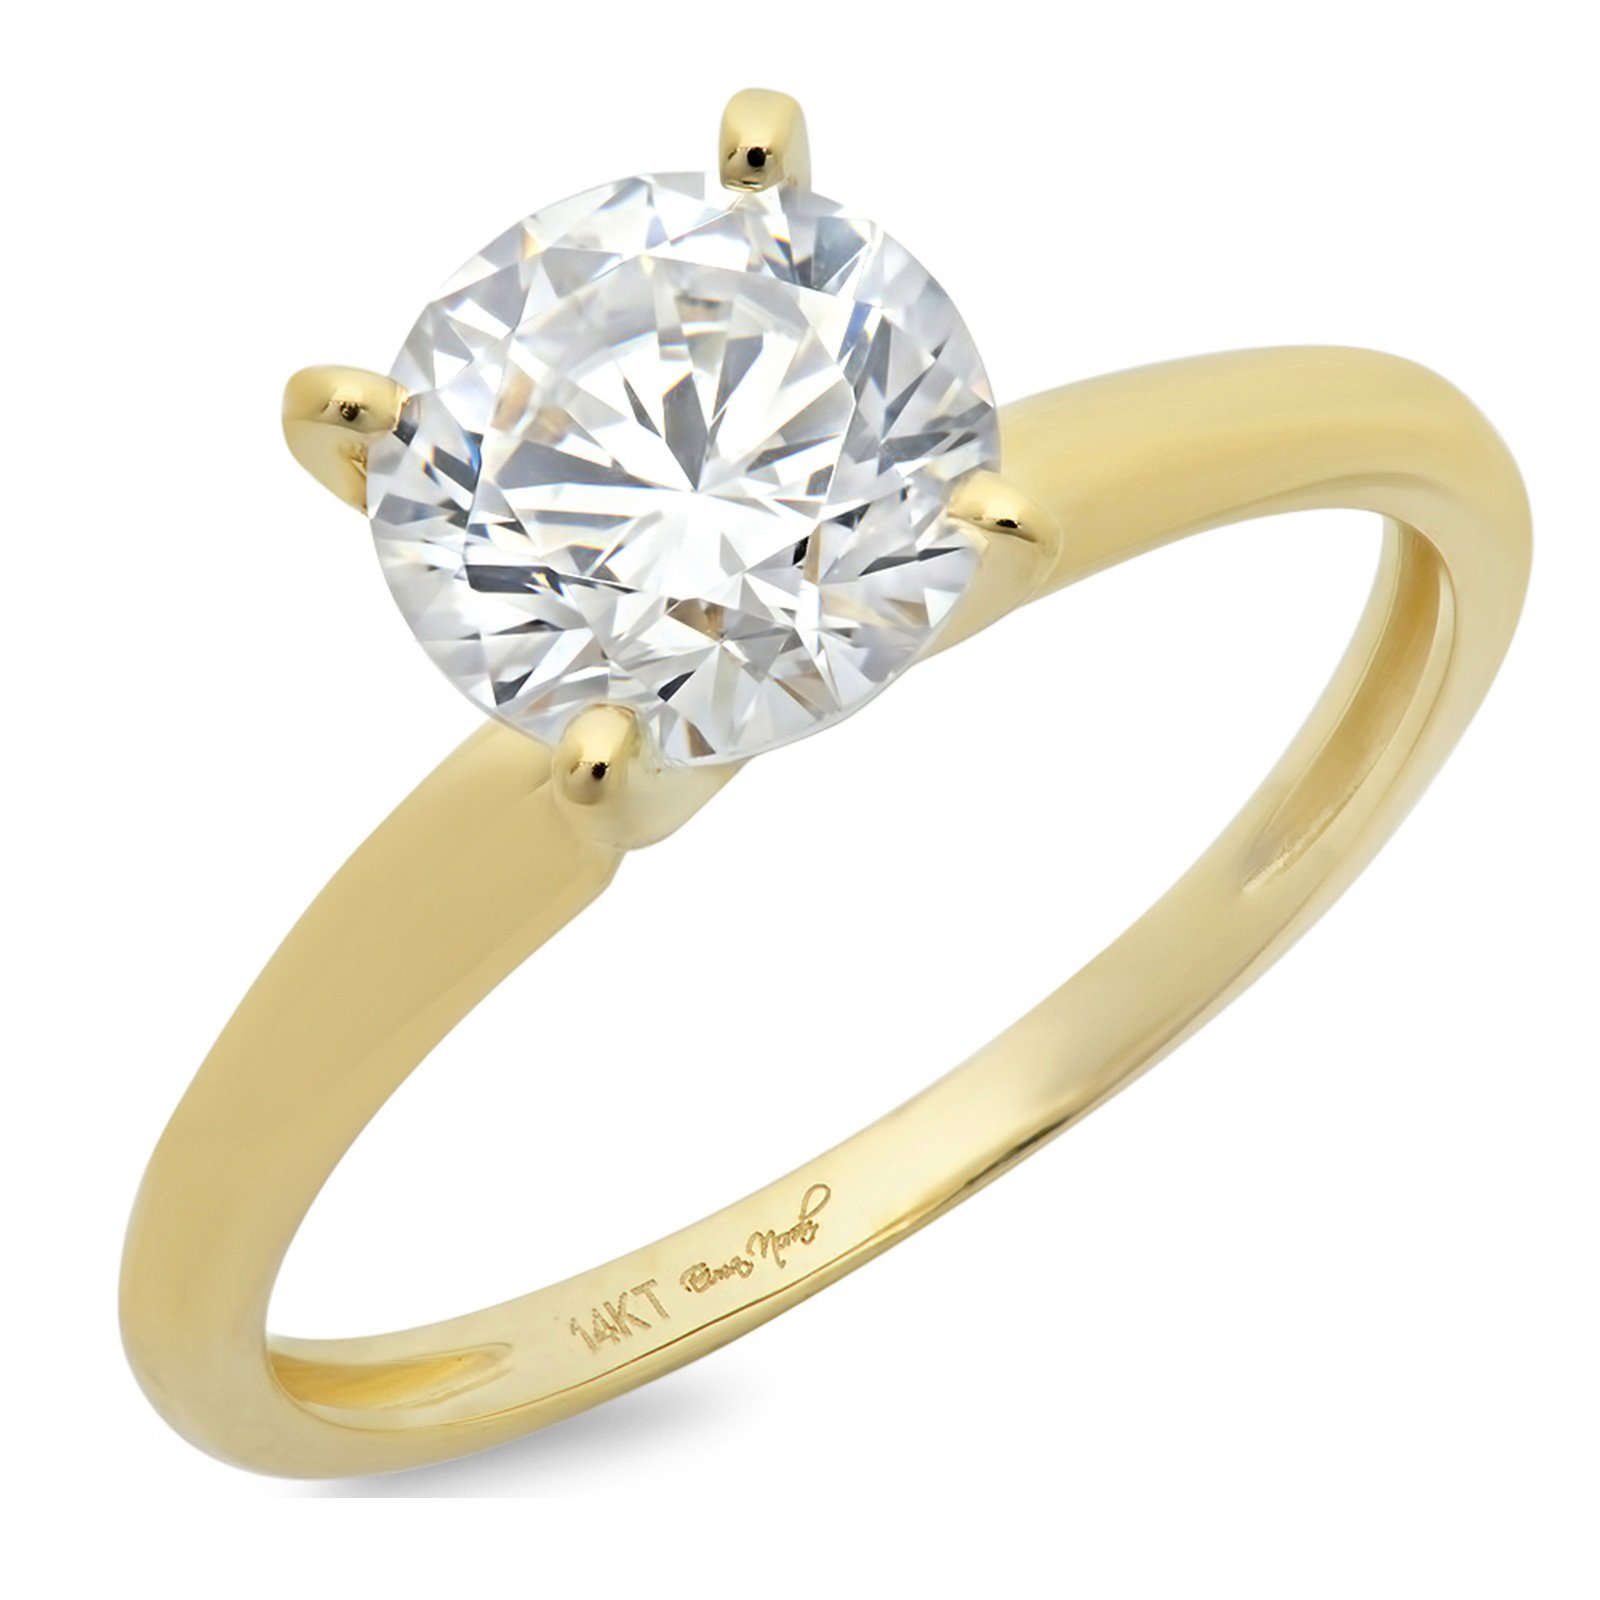 Clara Pucci 2.20 CT Round Cut 4-Prong Solitaire Anniversary Promise Bridal Engagement Wedding Ring 14k Yellow Gold, Size 6.75 by Clara Pucci